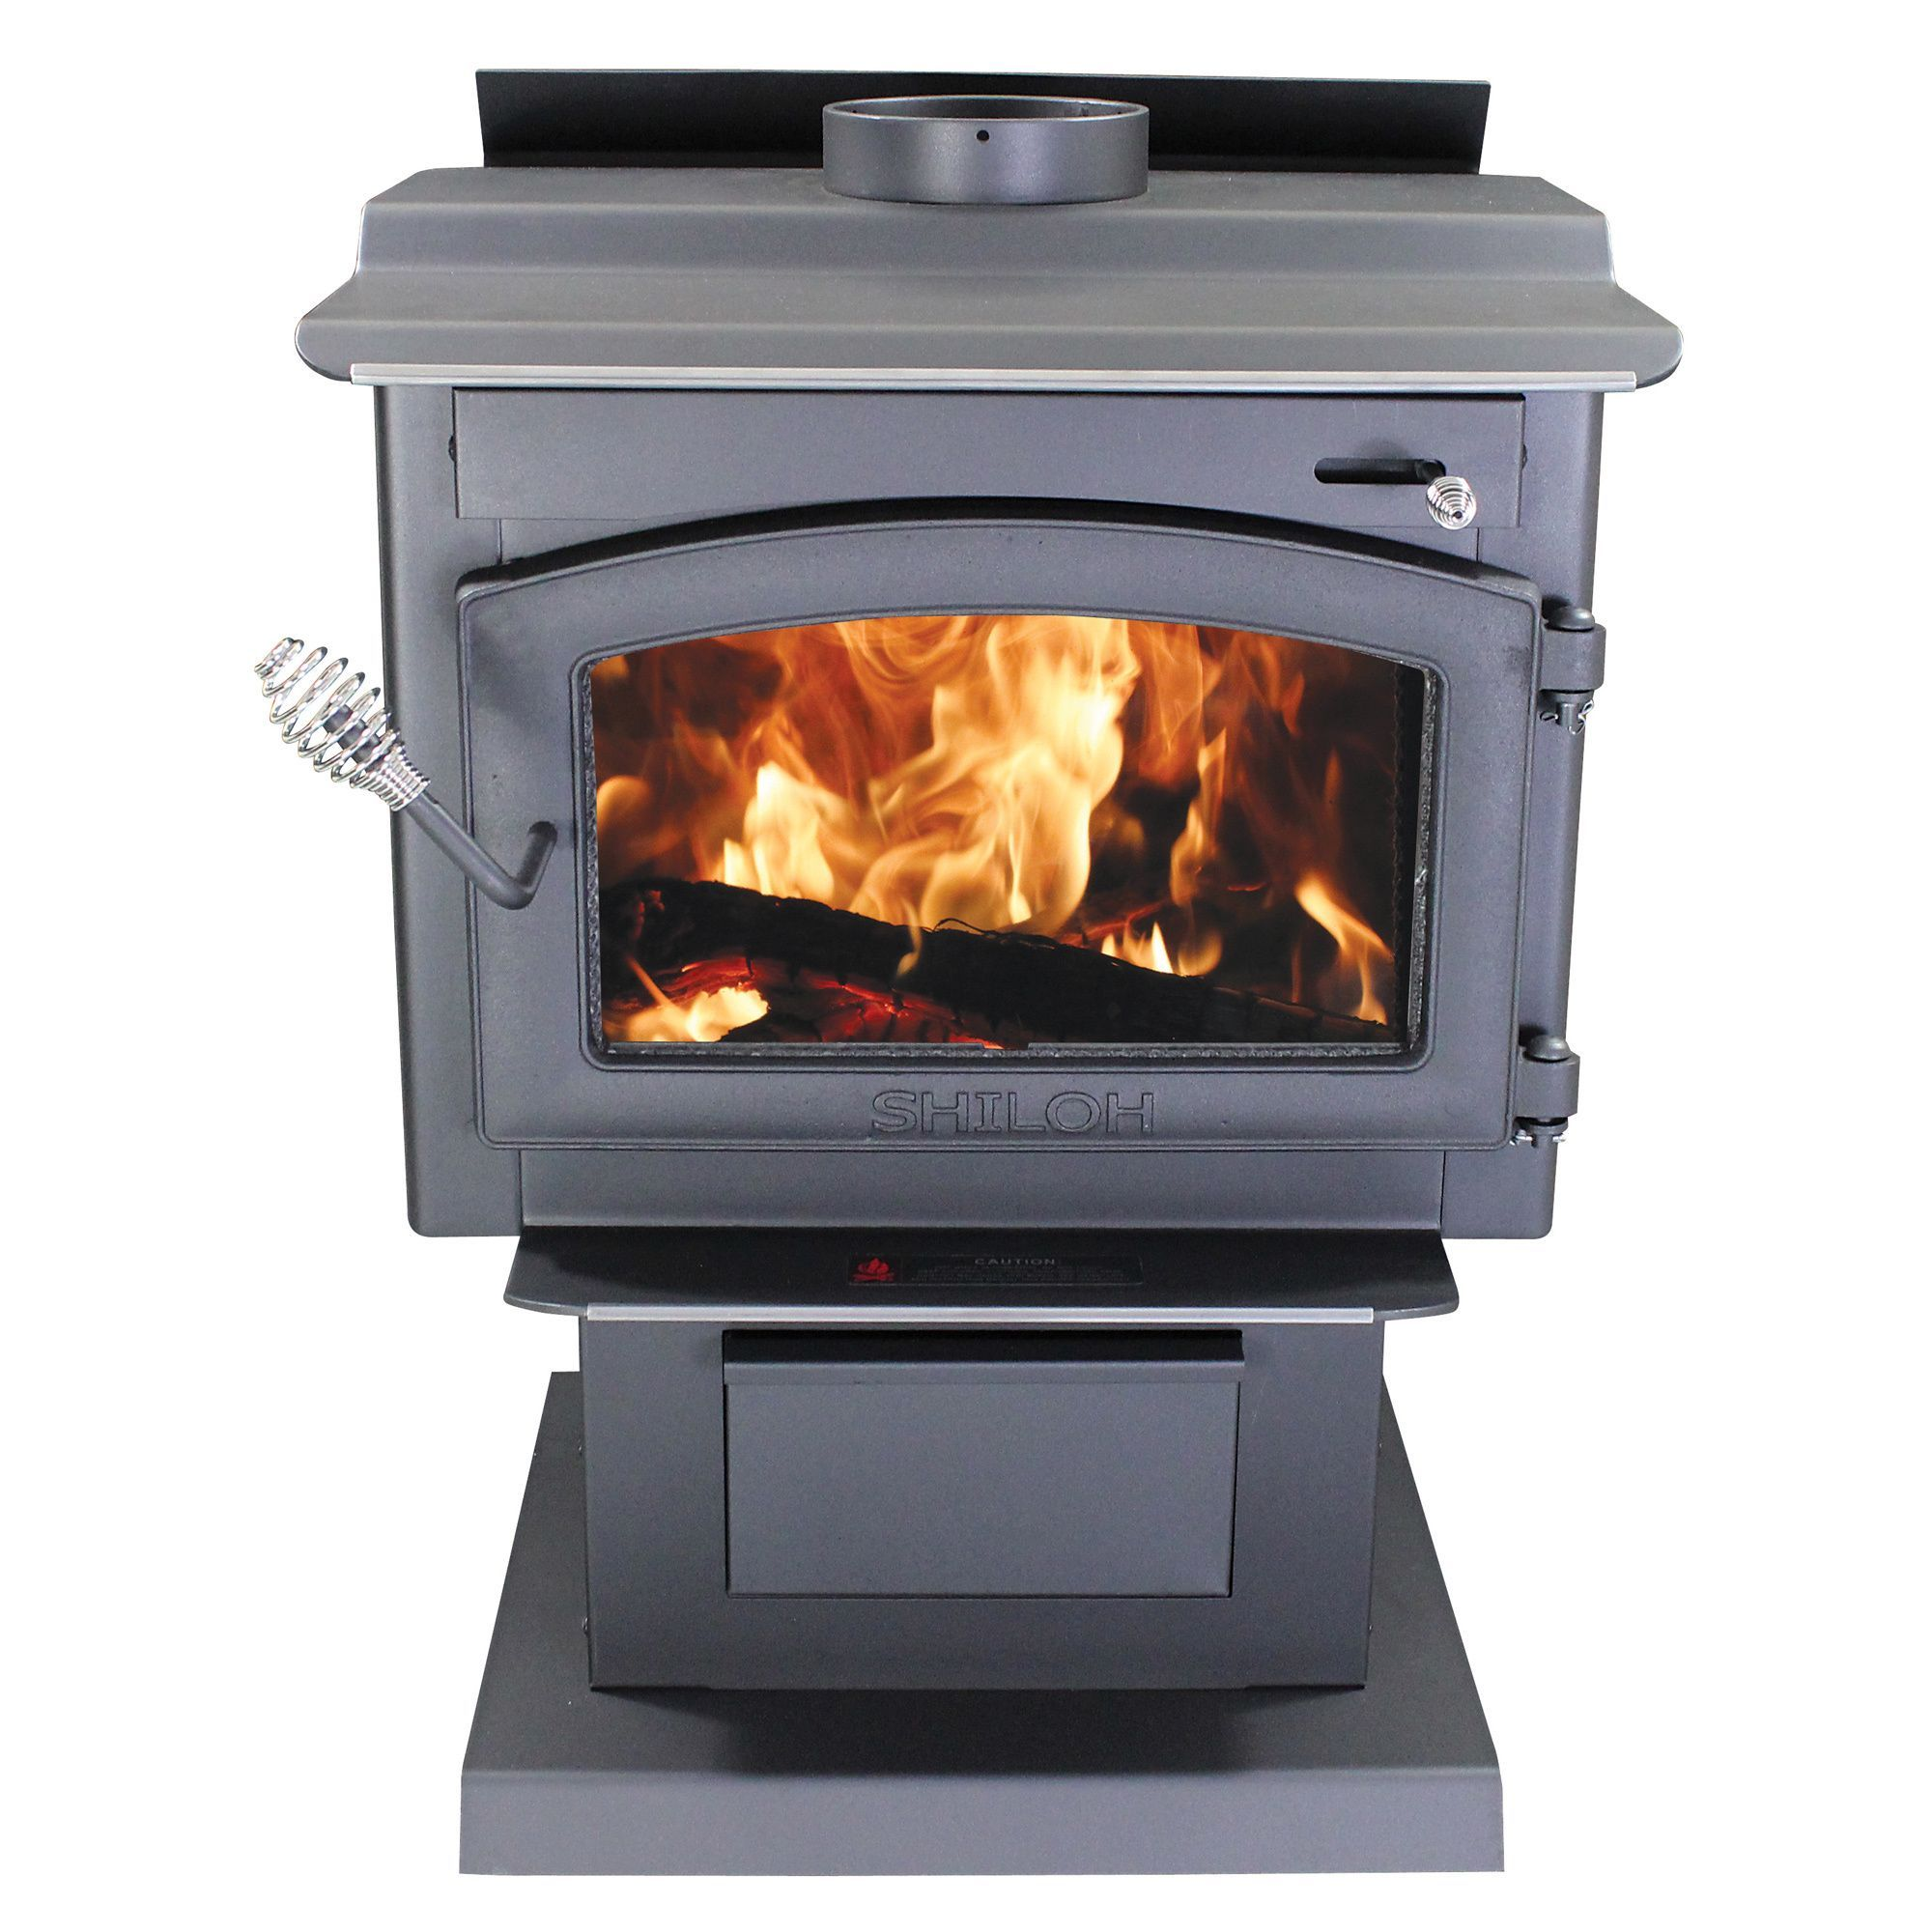 this high efficiency wood stove is an air tight plate steel wood